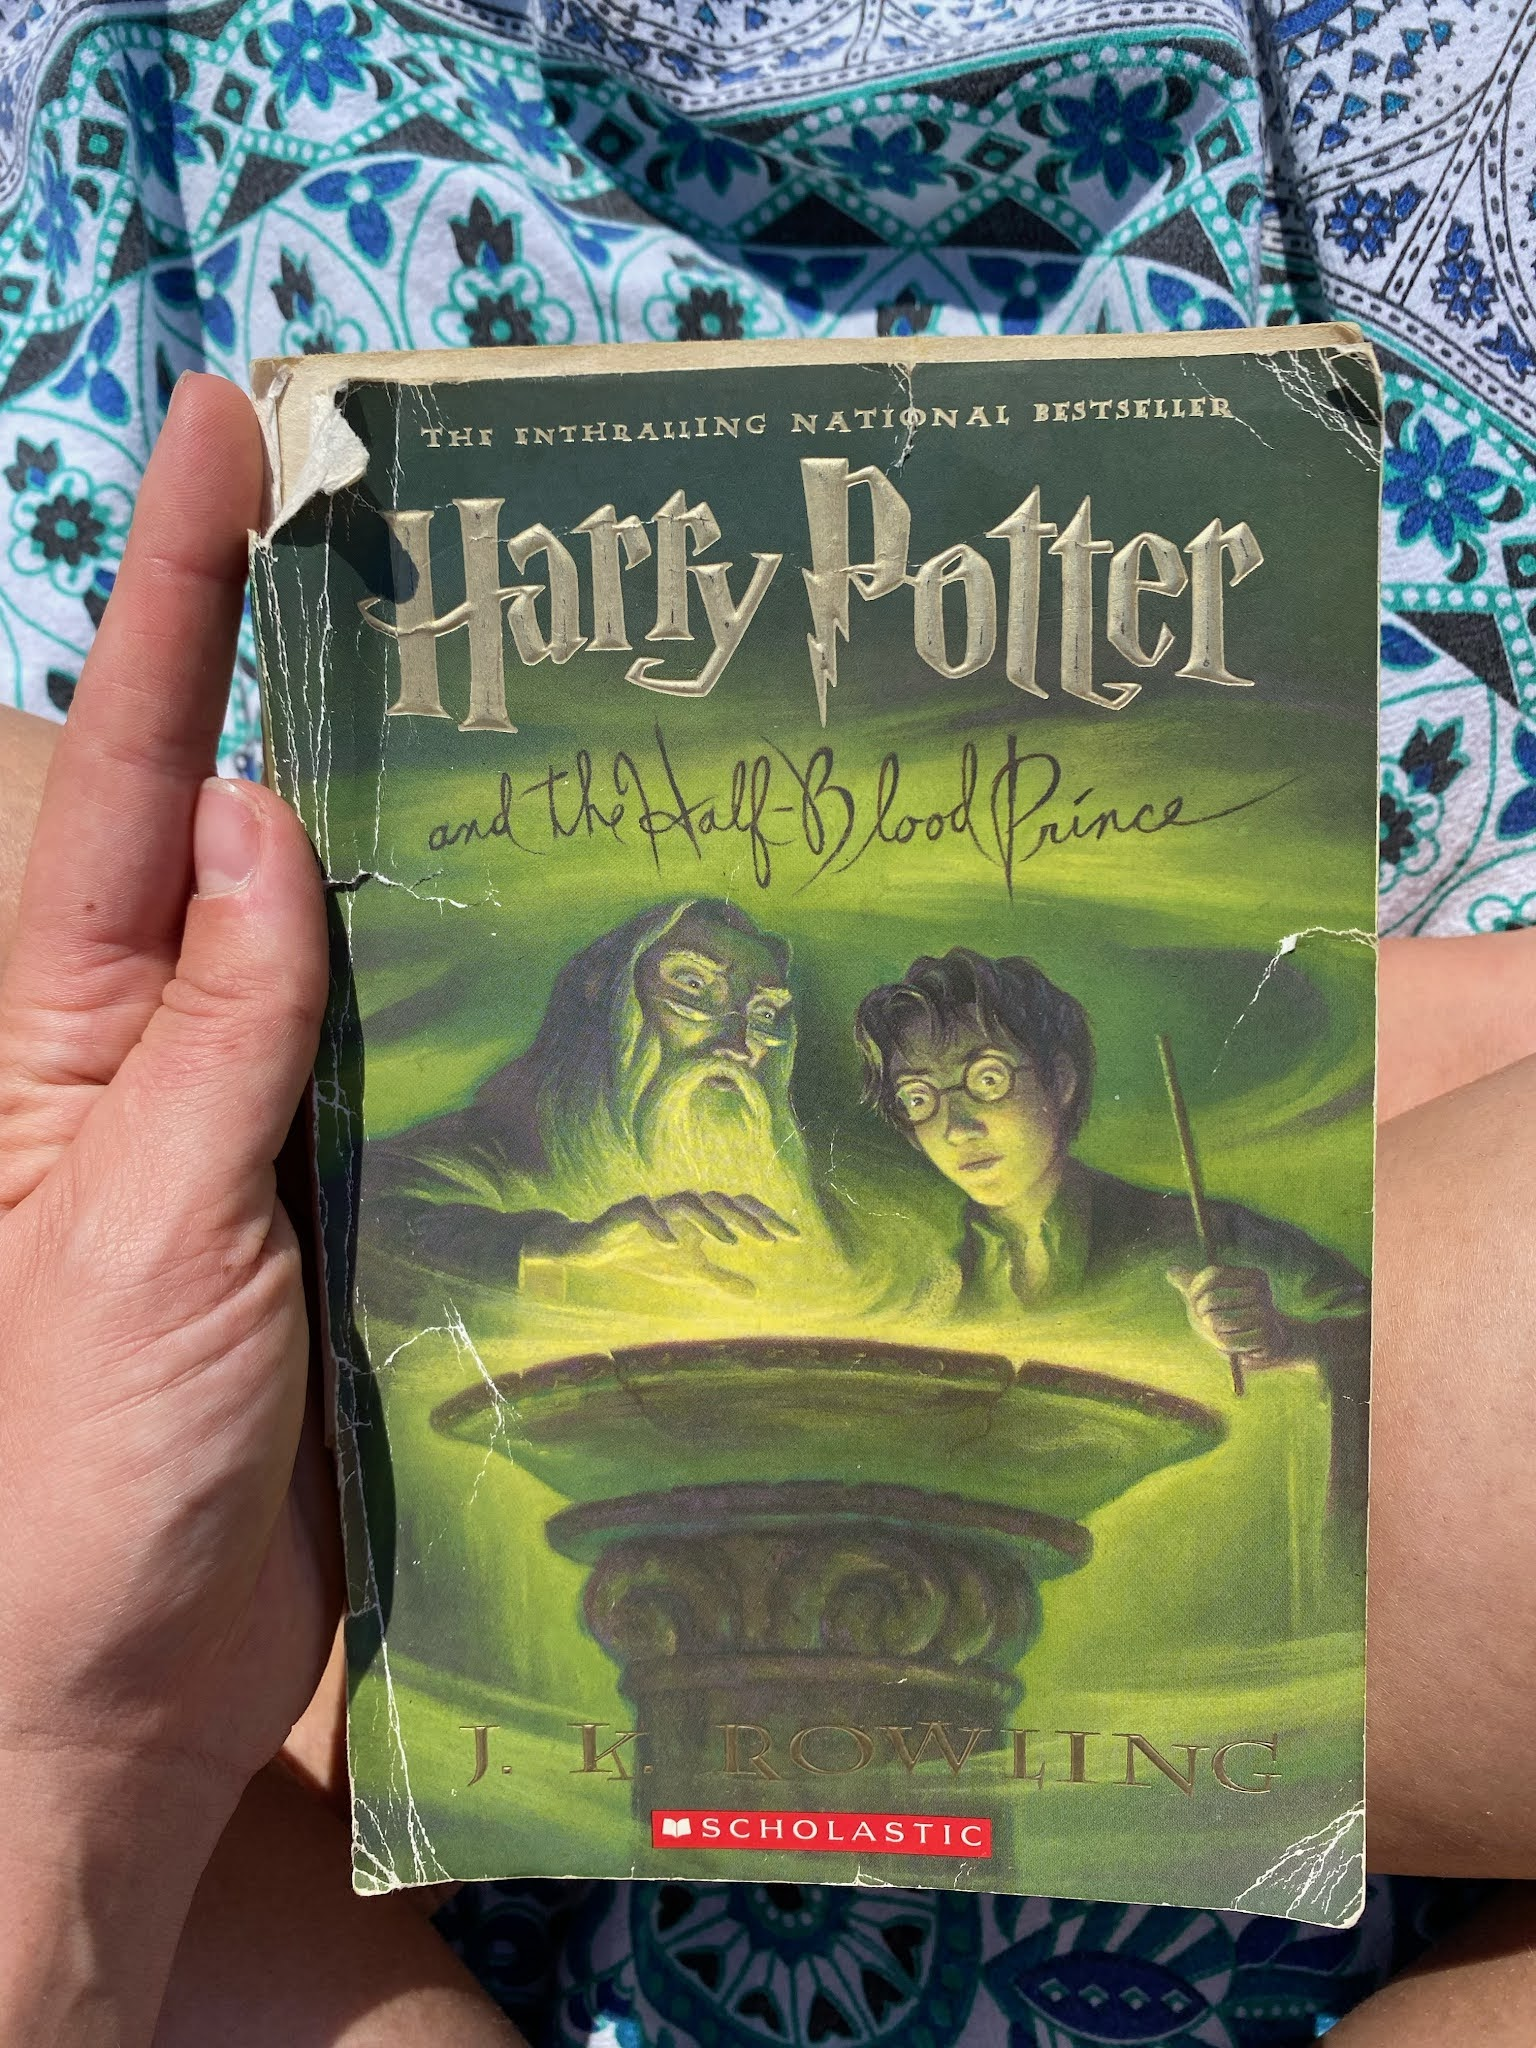 Harry Potter and the Half Blood Prince | www.biblio-style.com